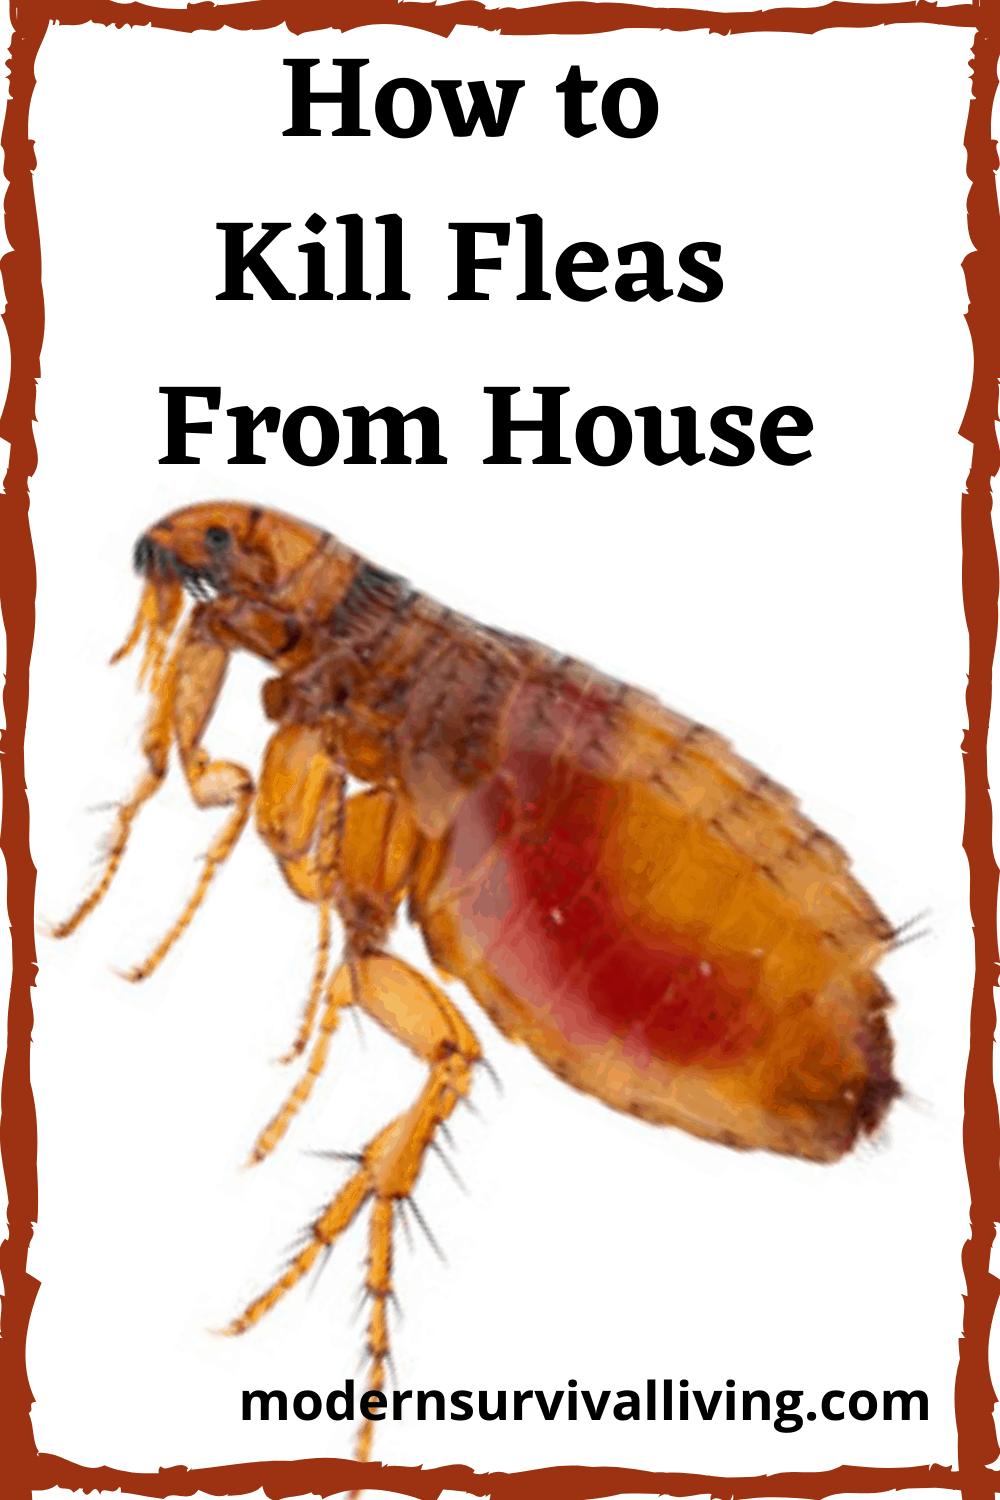 How to Kill Fleas From House